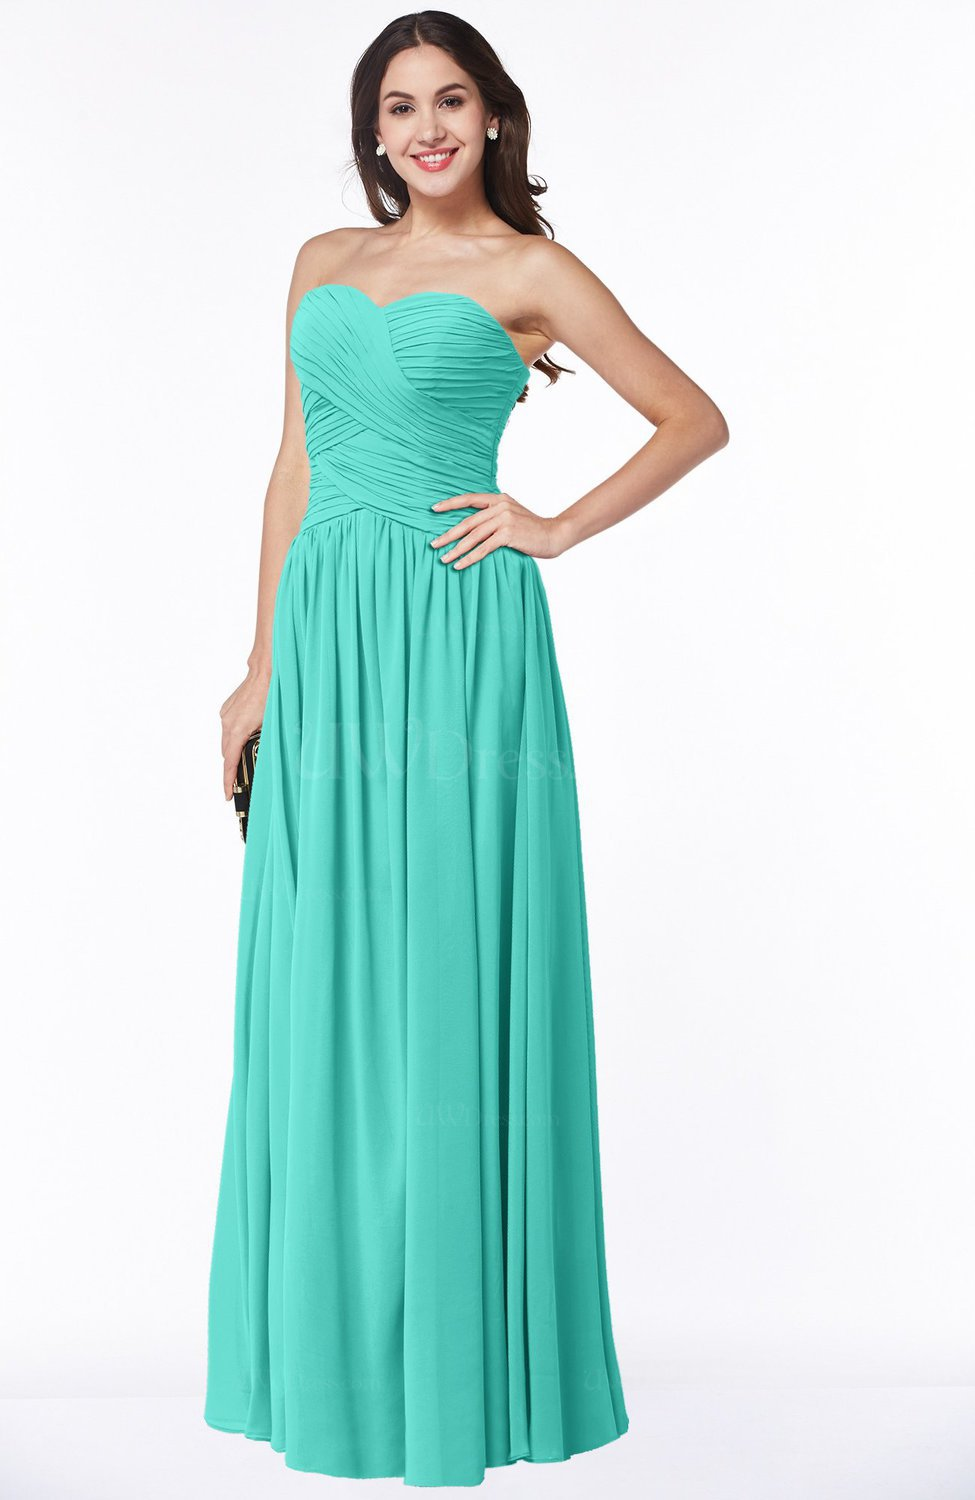 Blue Turquoise Traditional A-line Sweetheart Sleeveless Floor Length Plus  Size Bridesmaid Dresses